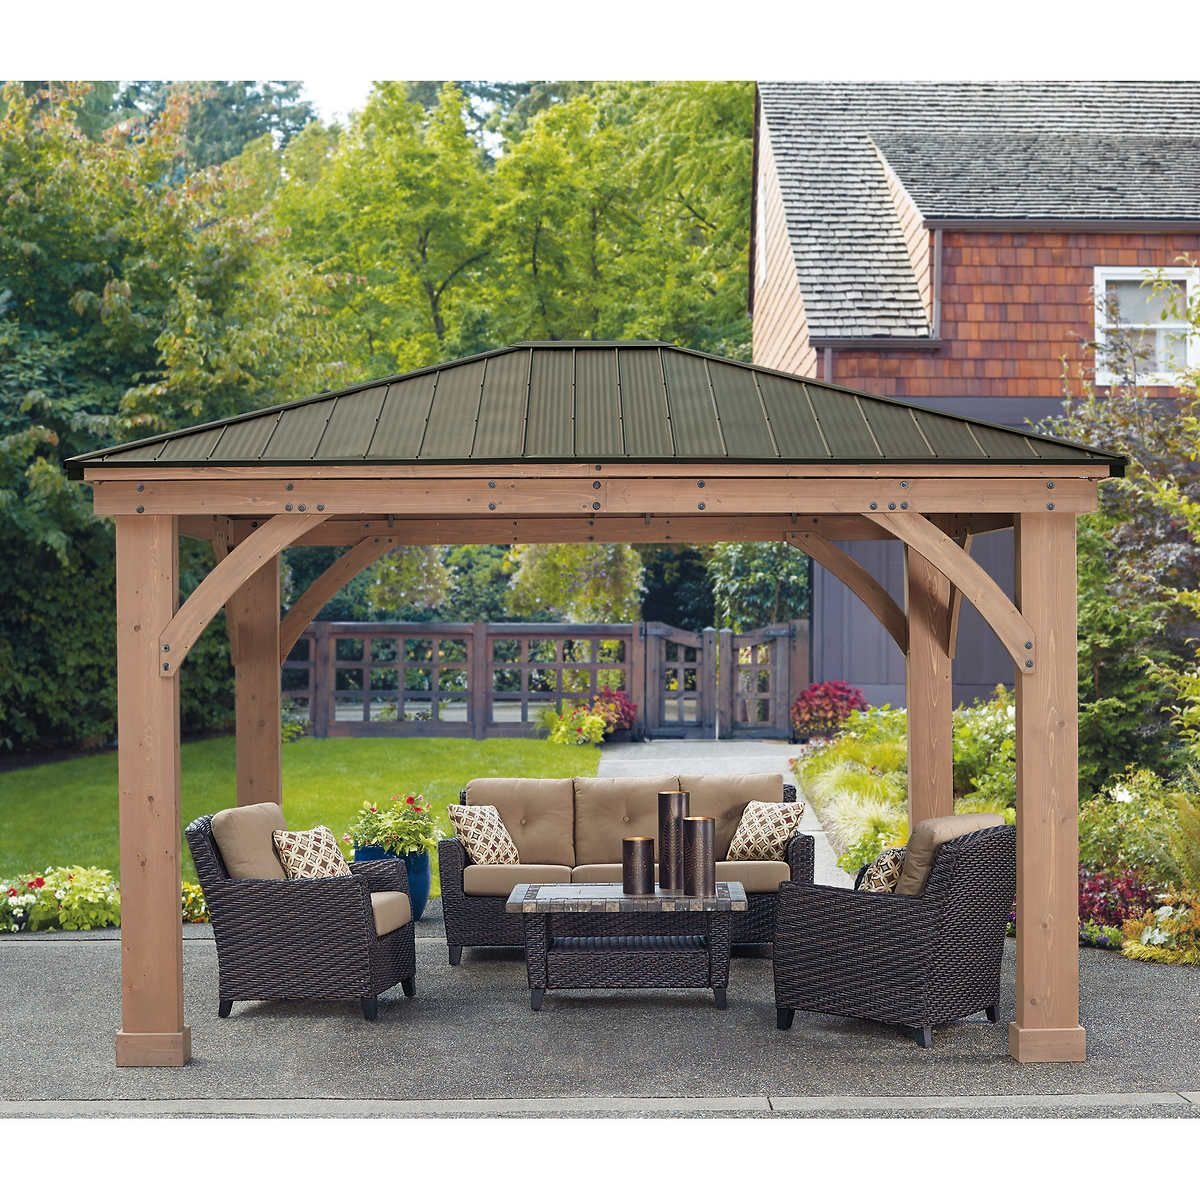 12 X 14 Cedar Gazebo With Aluminum Roof Outdoor Pergola Patio Gazebo Pergola Patio